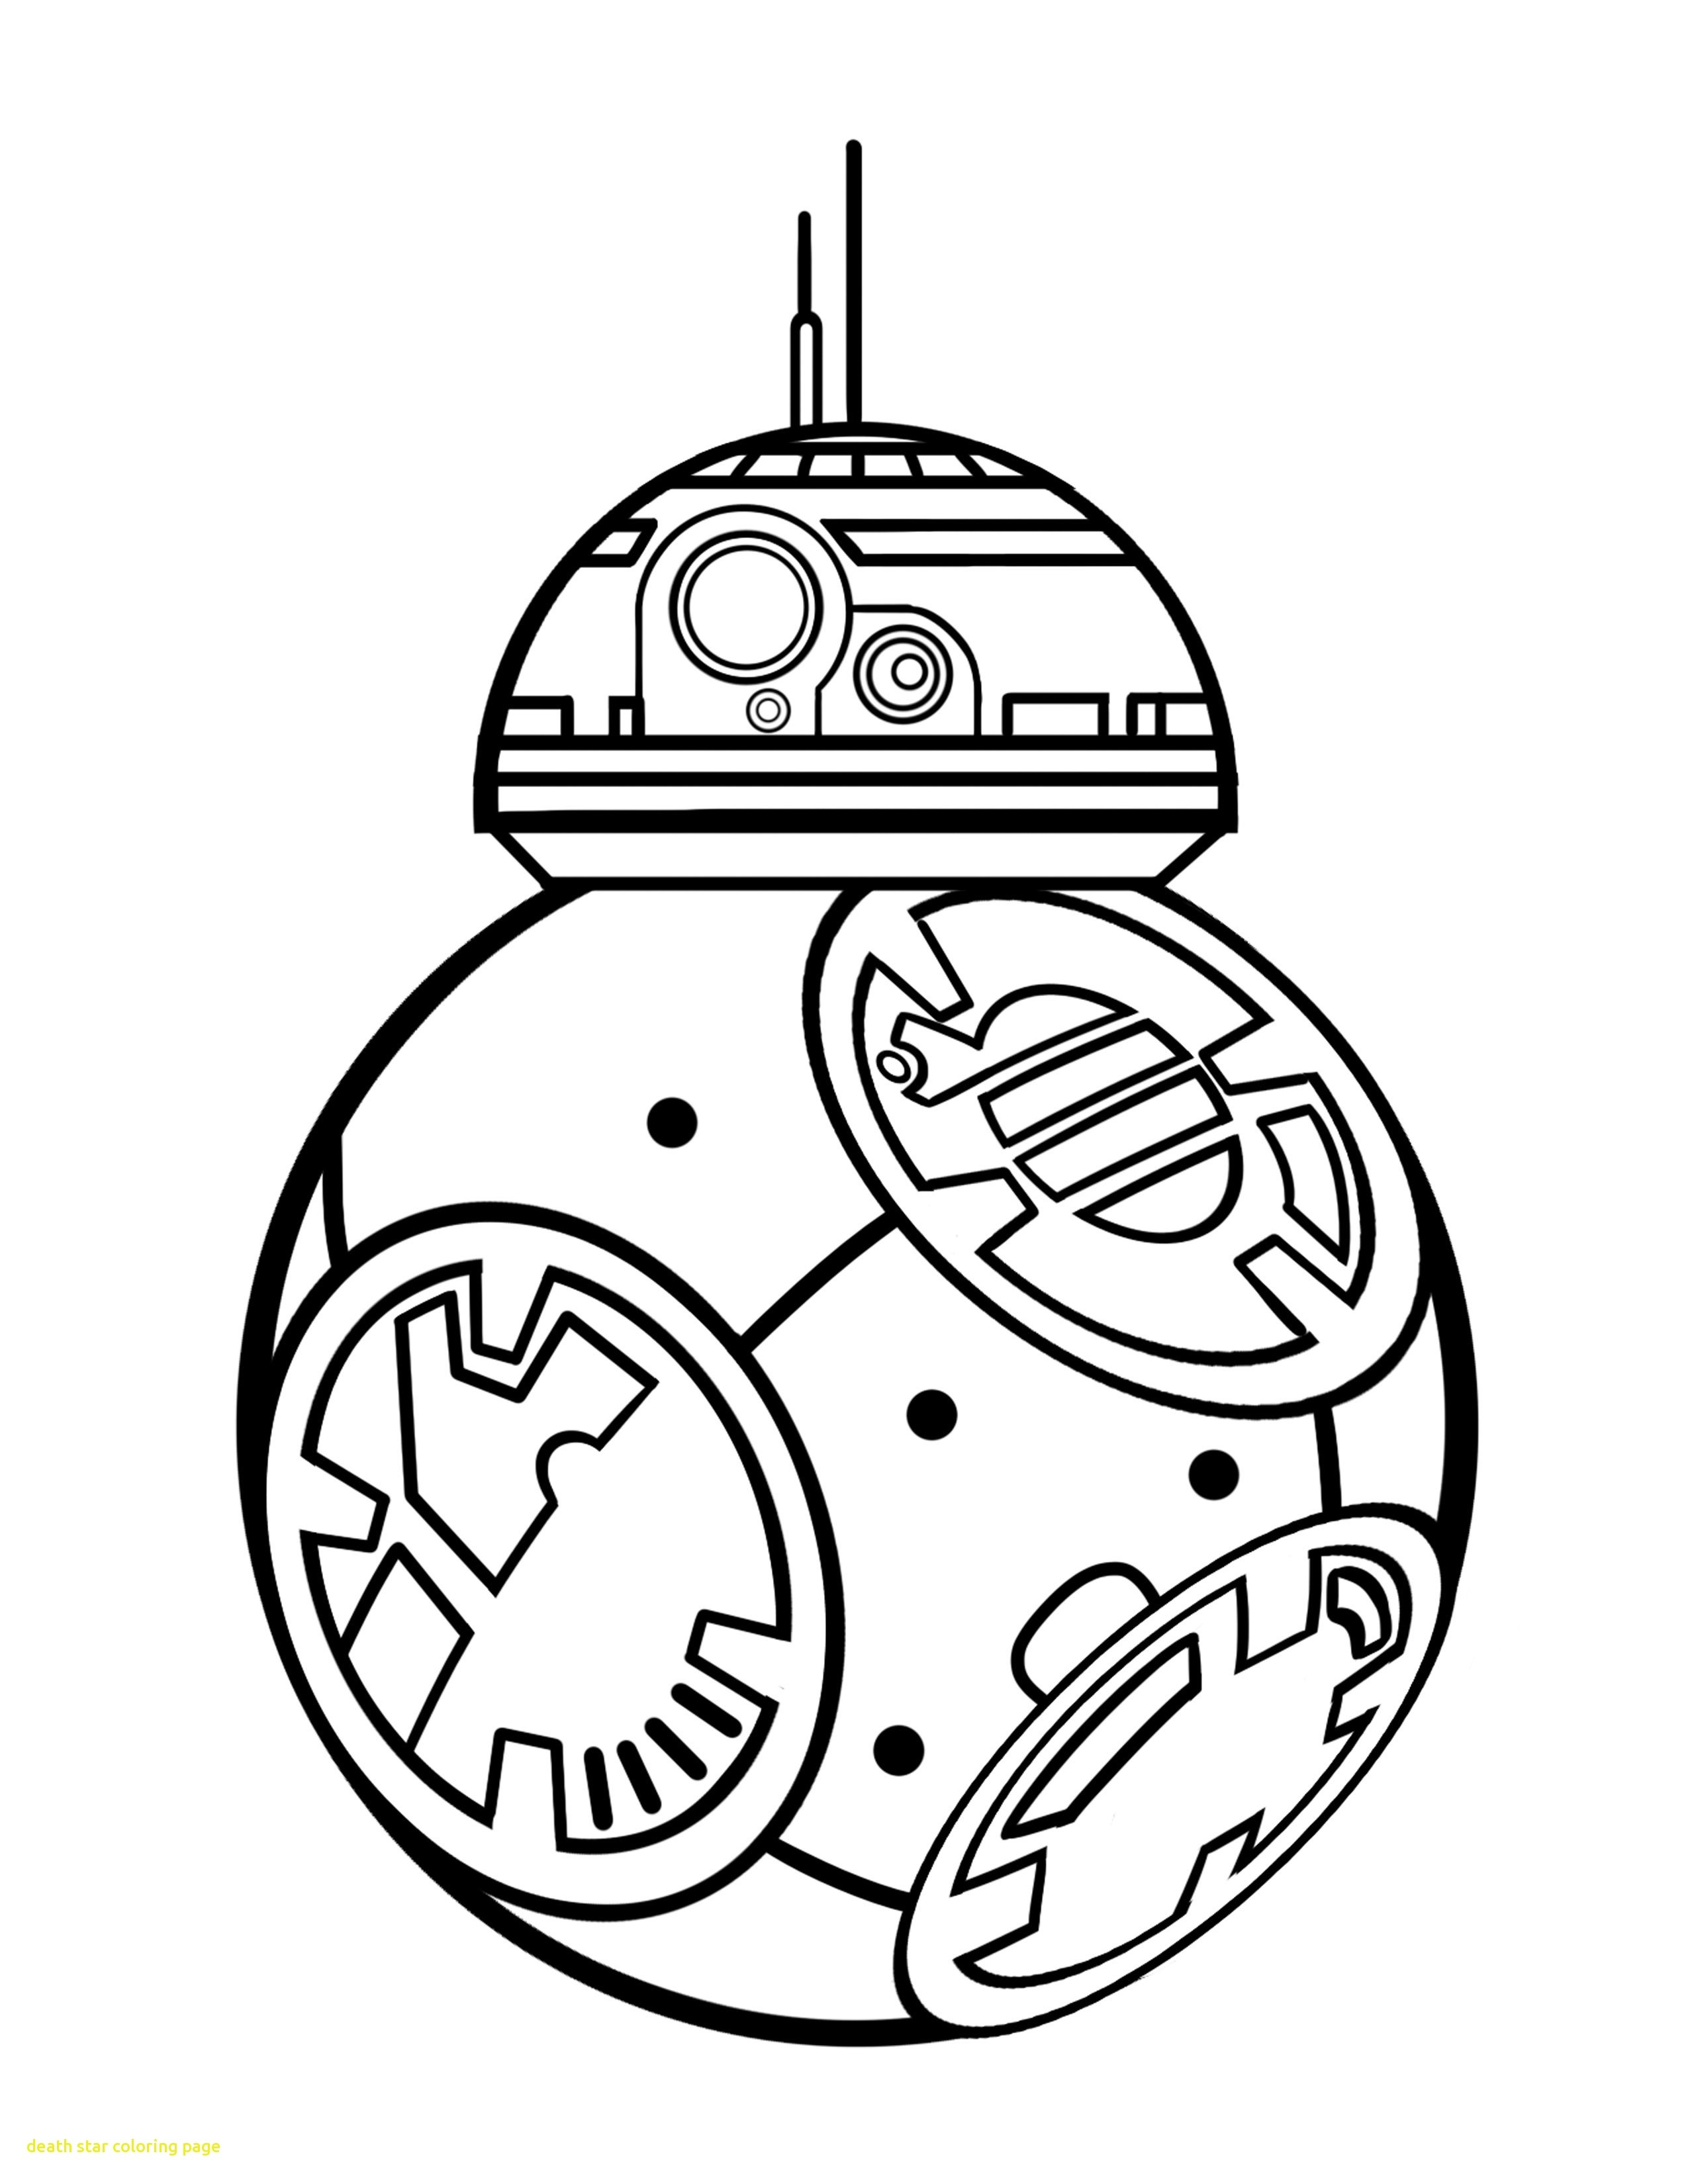 Star Coloring Page At Getdrawings